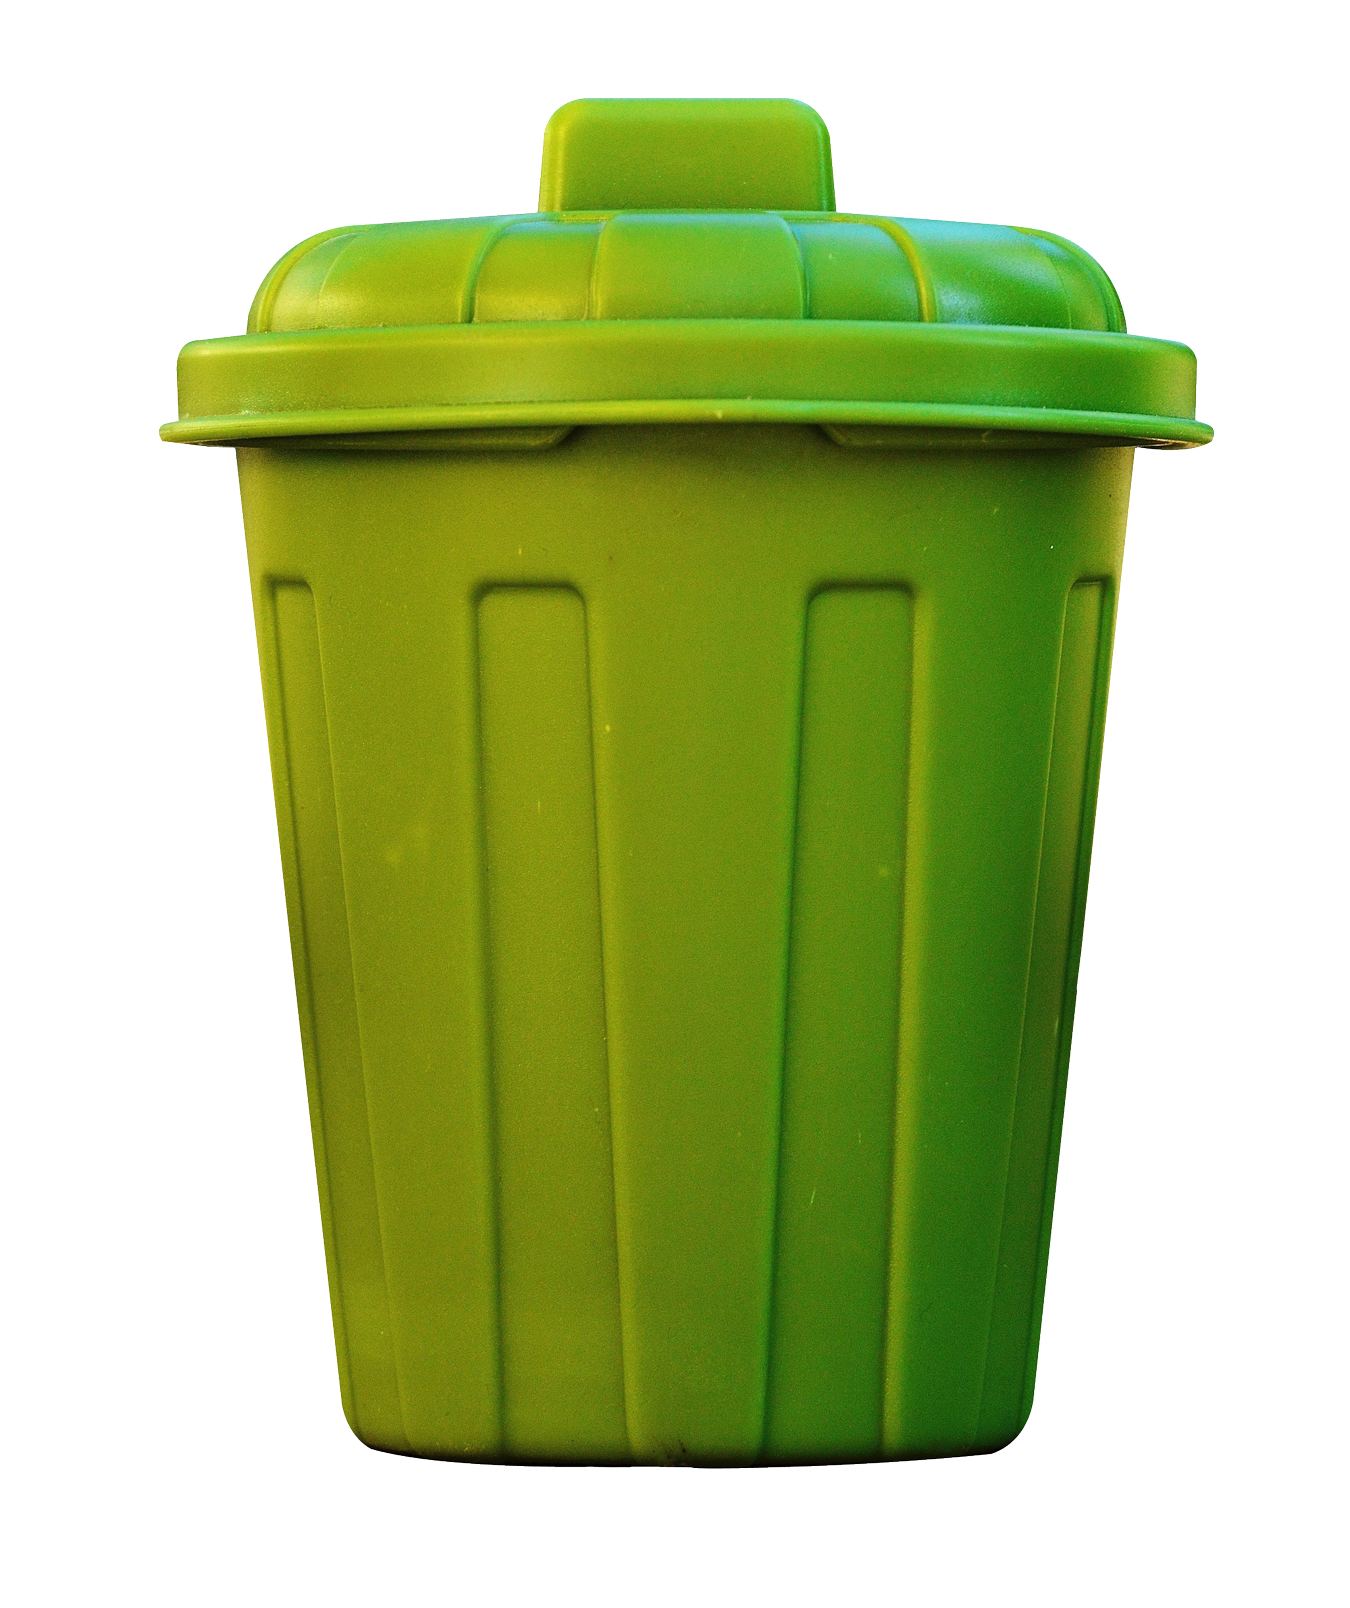 Download for free Recycle Bin Transparent PNG Image